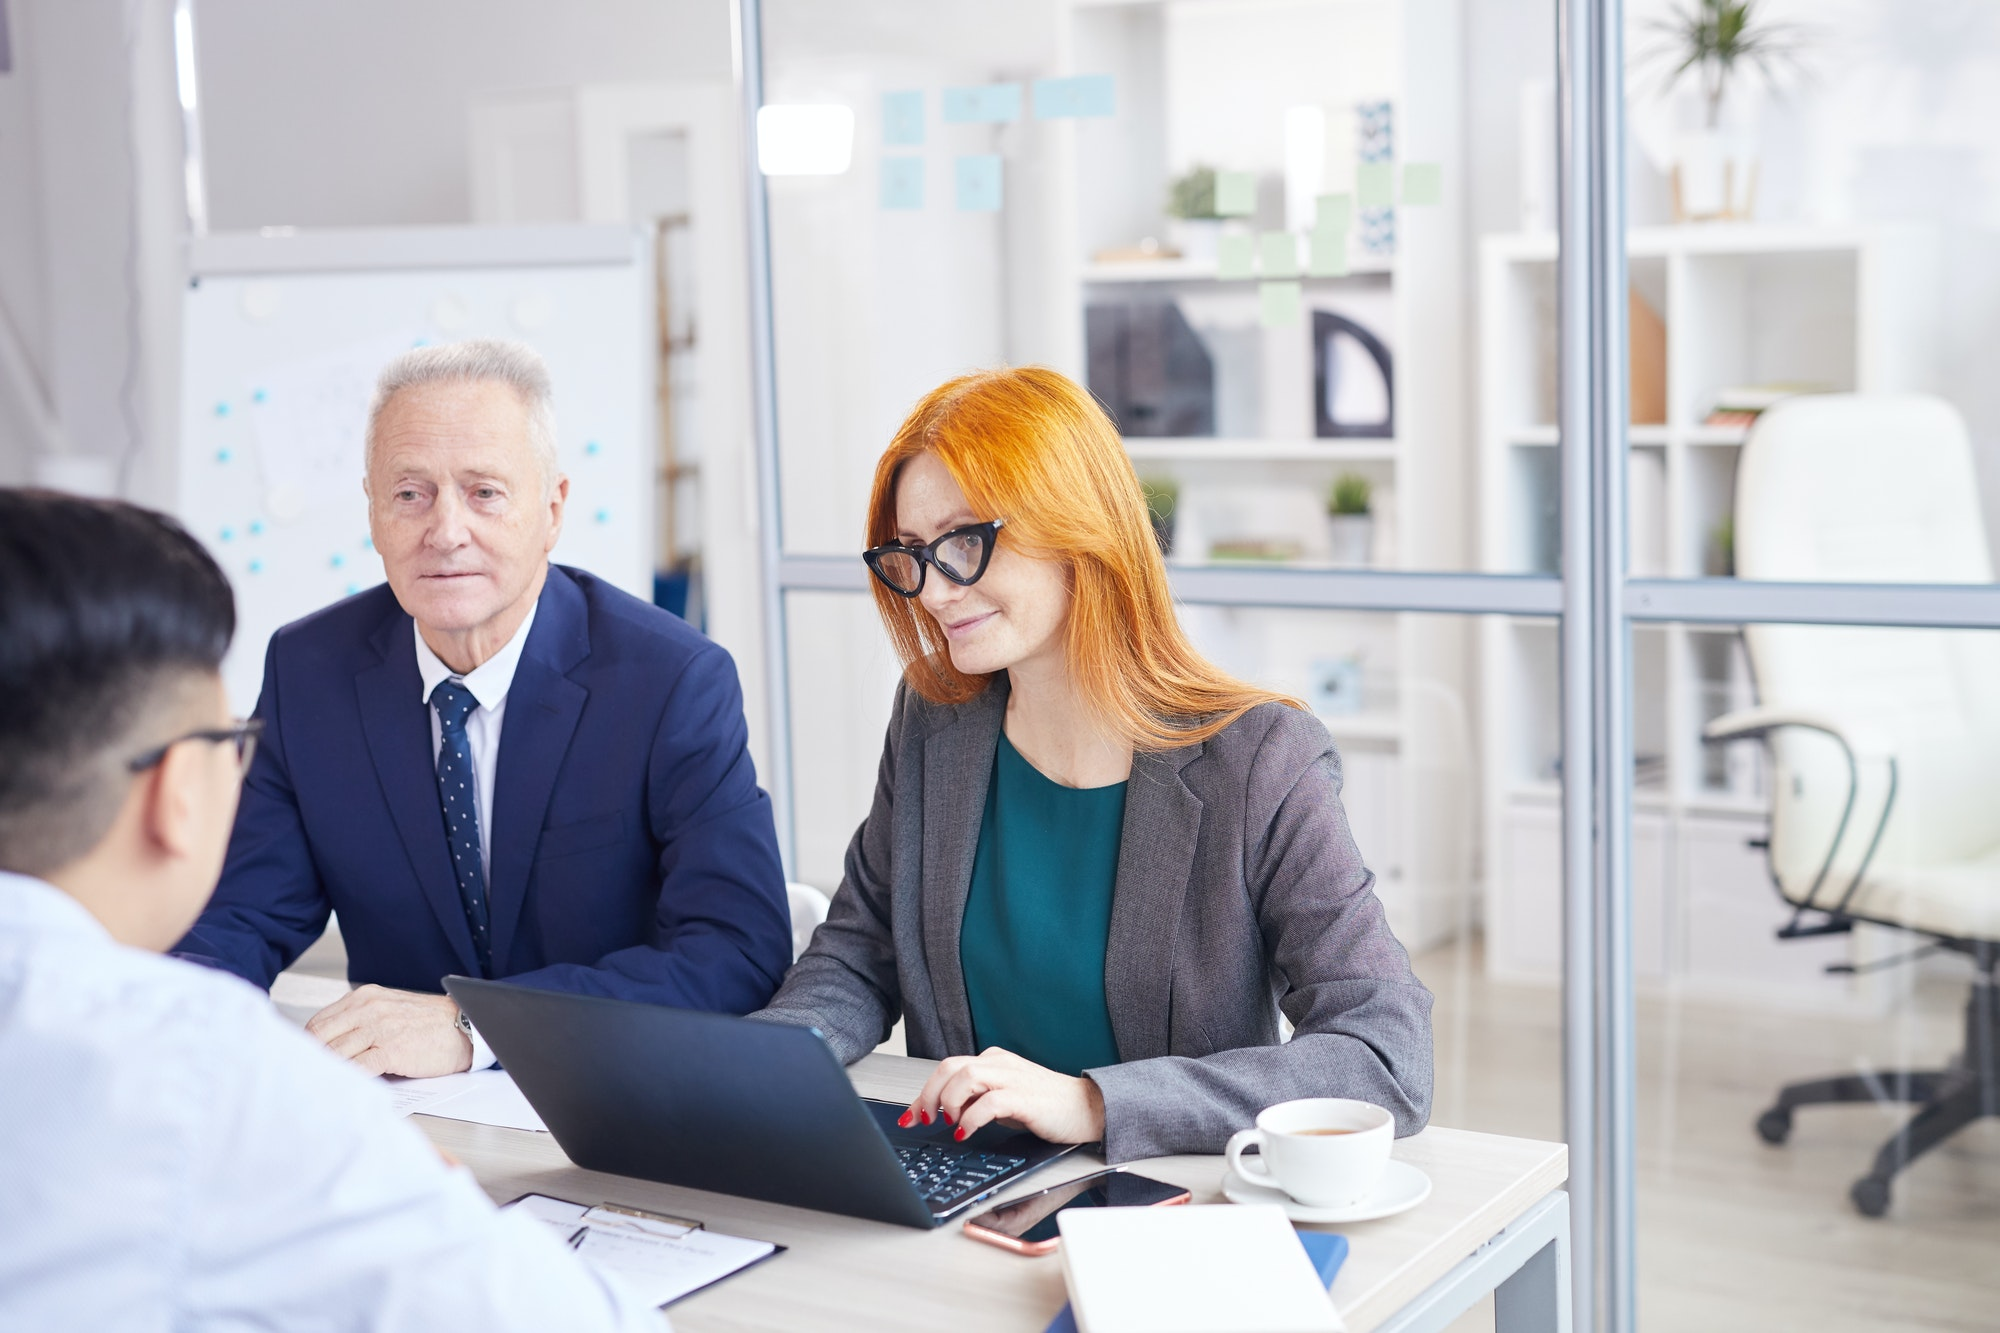 Business Managers Interviewing Candidate